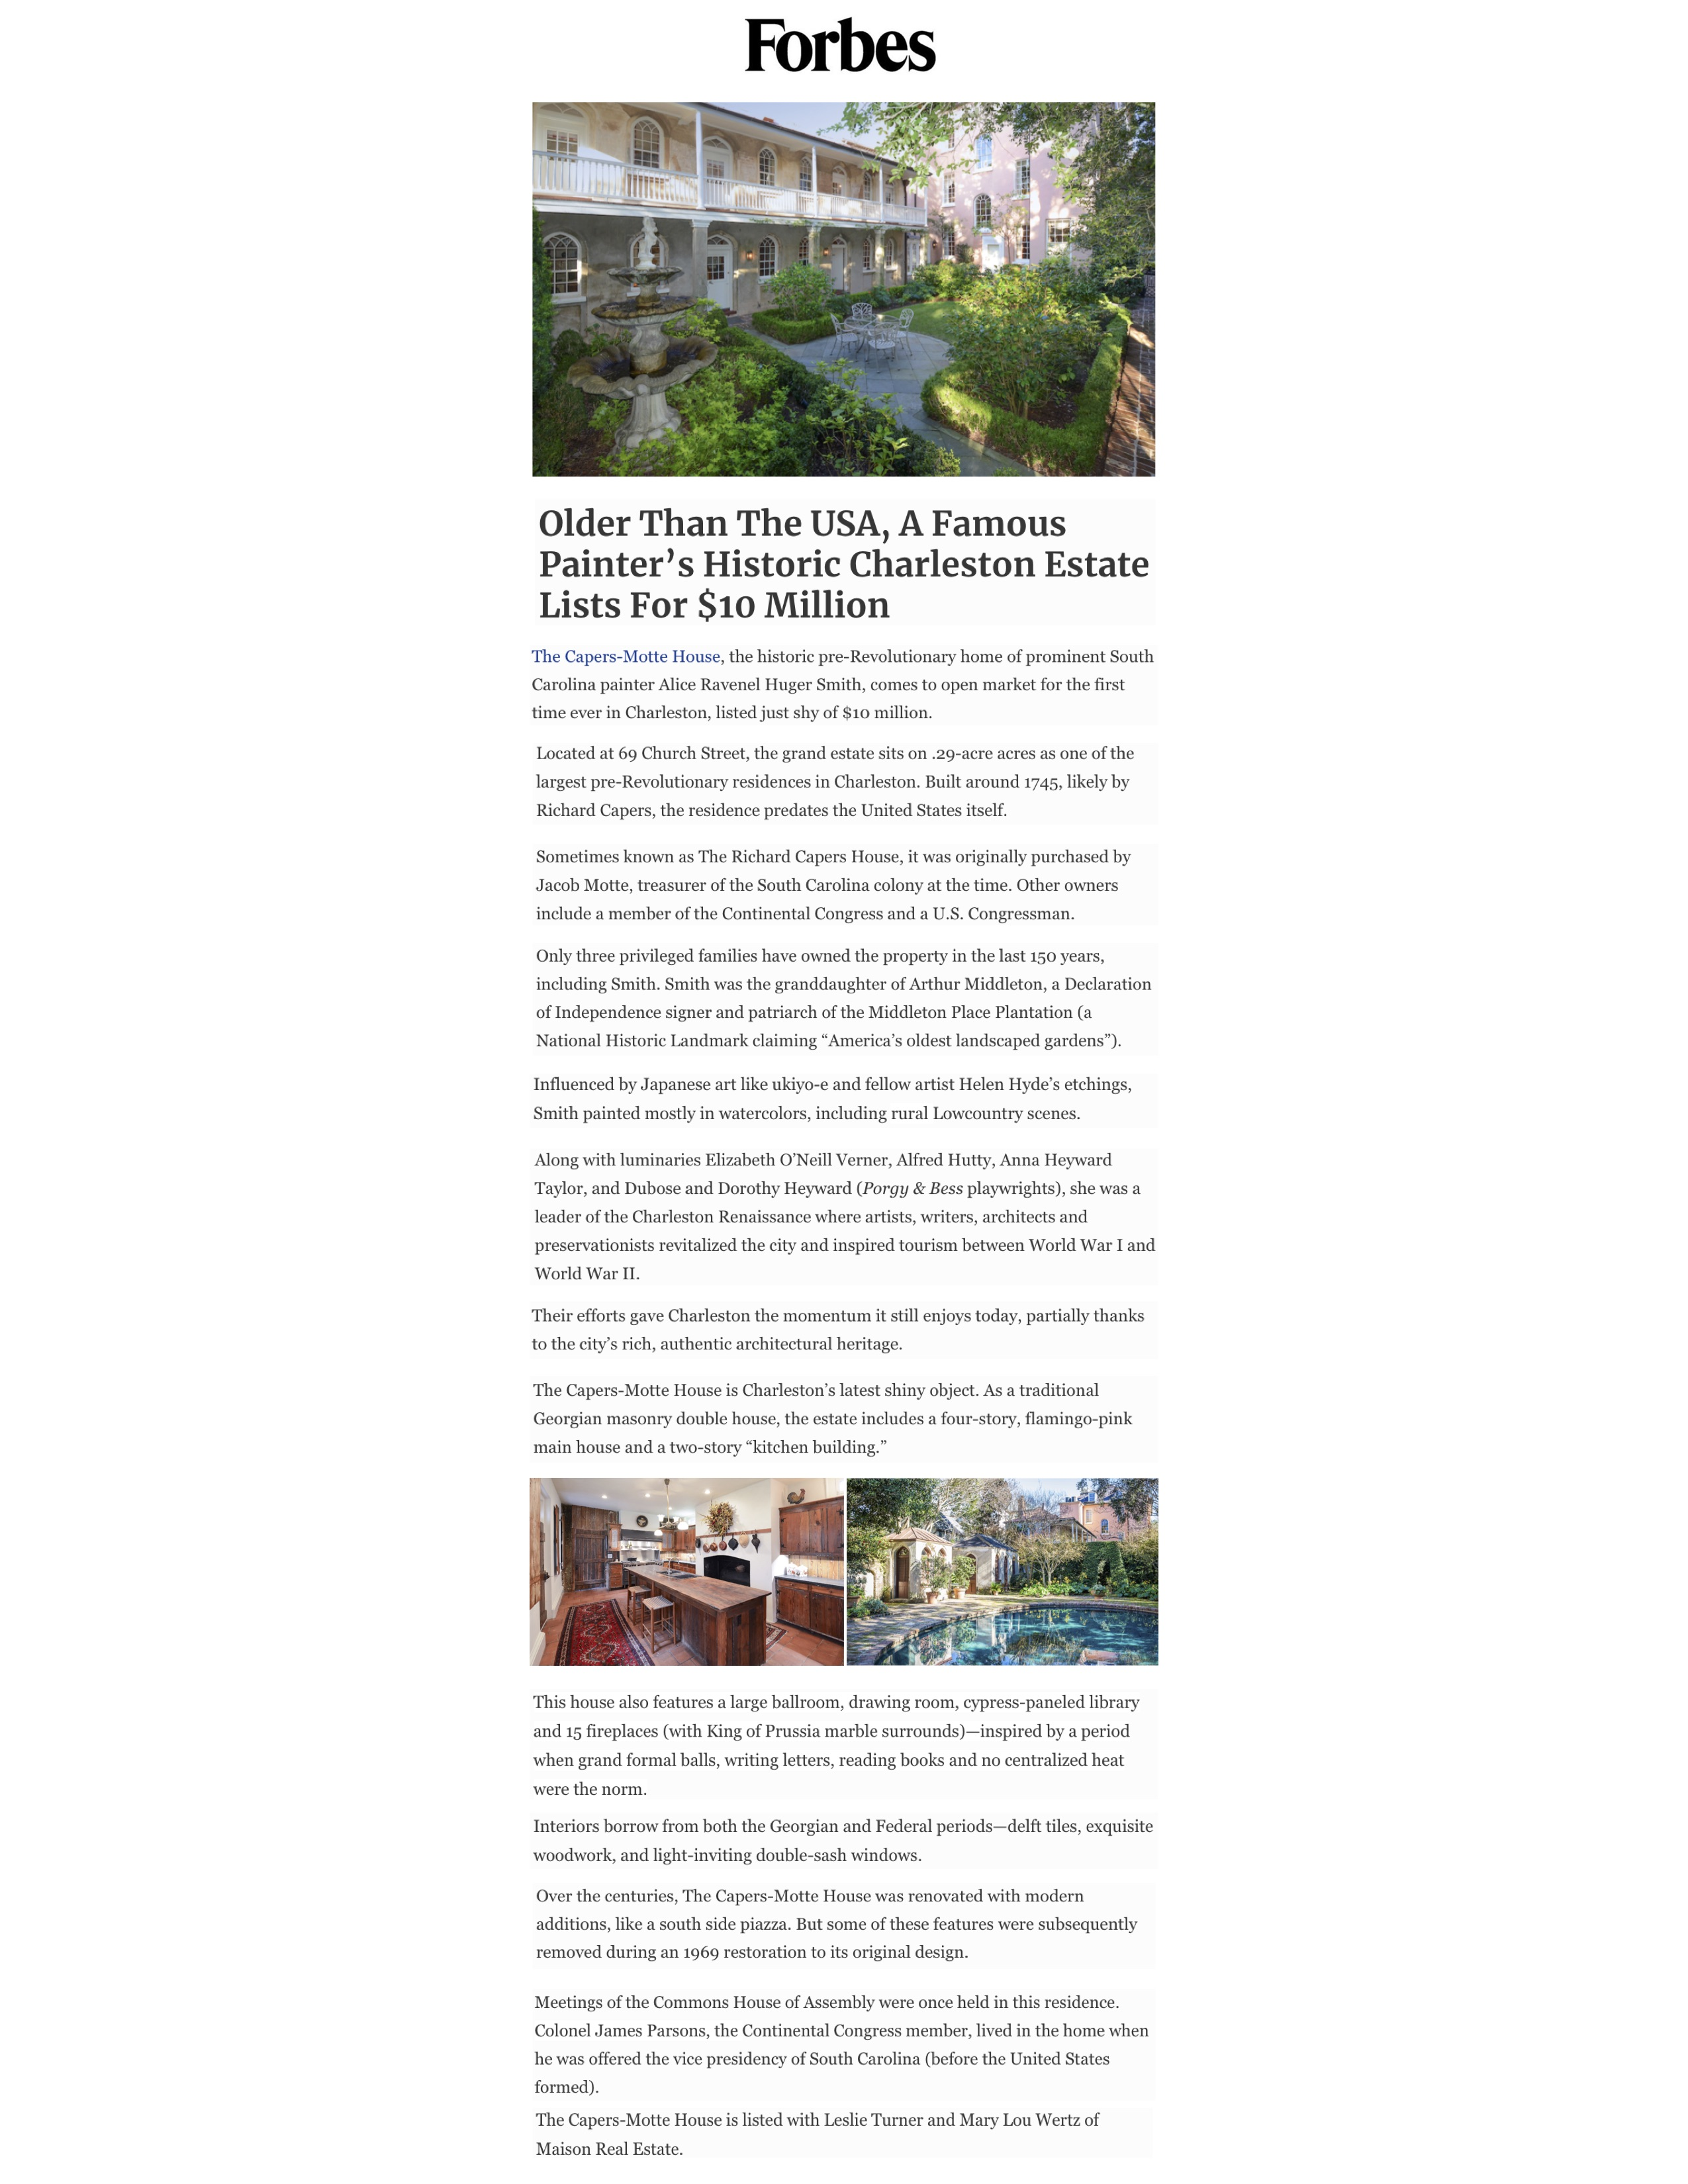 Forbes Magazine covers our listing at 69 Church Street